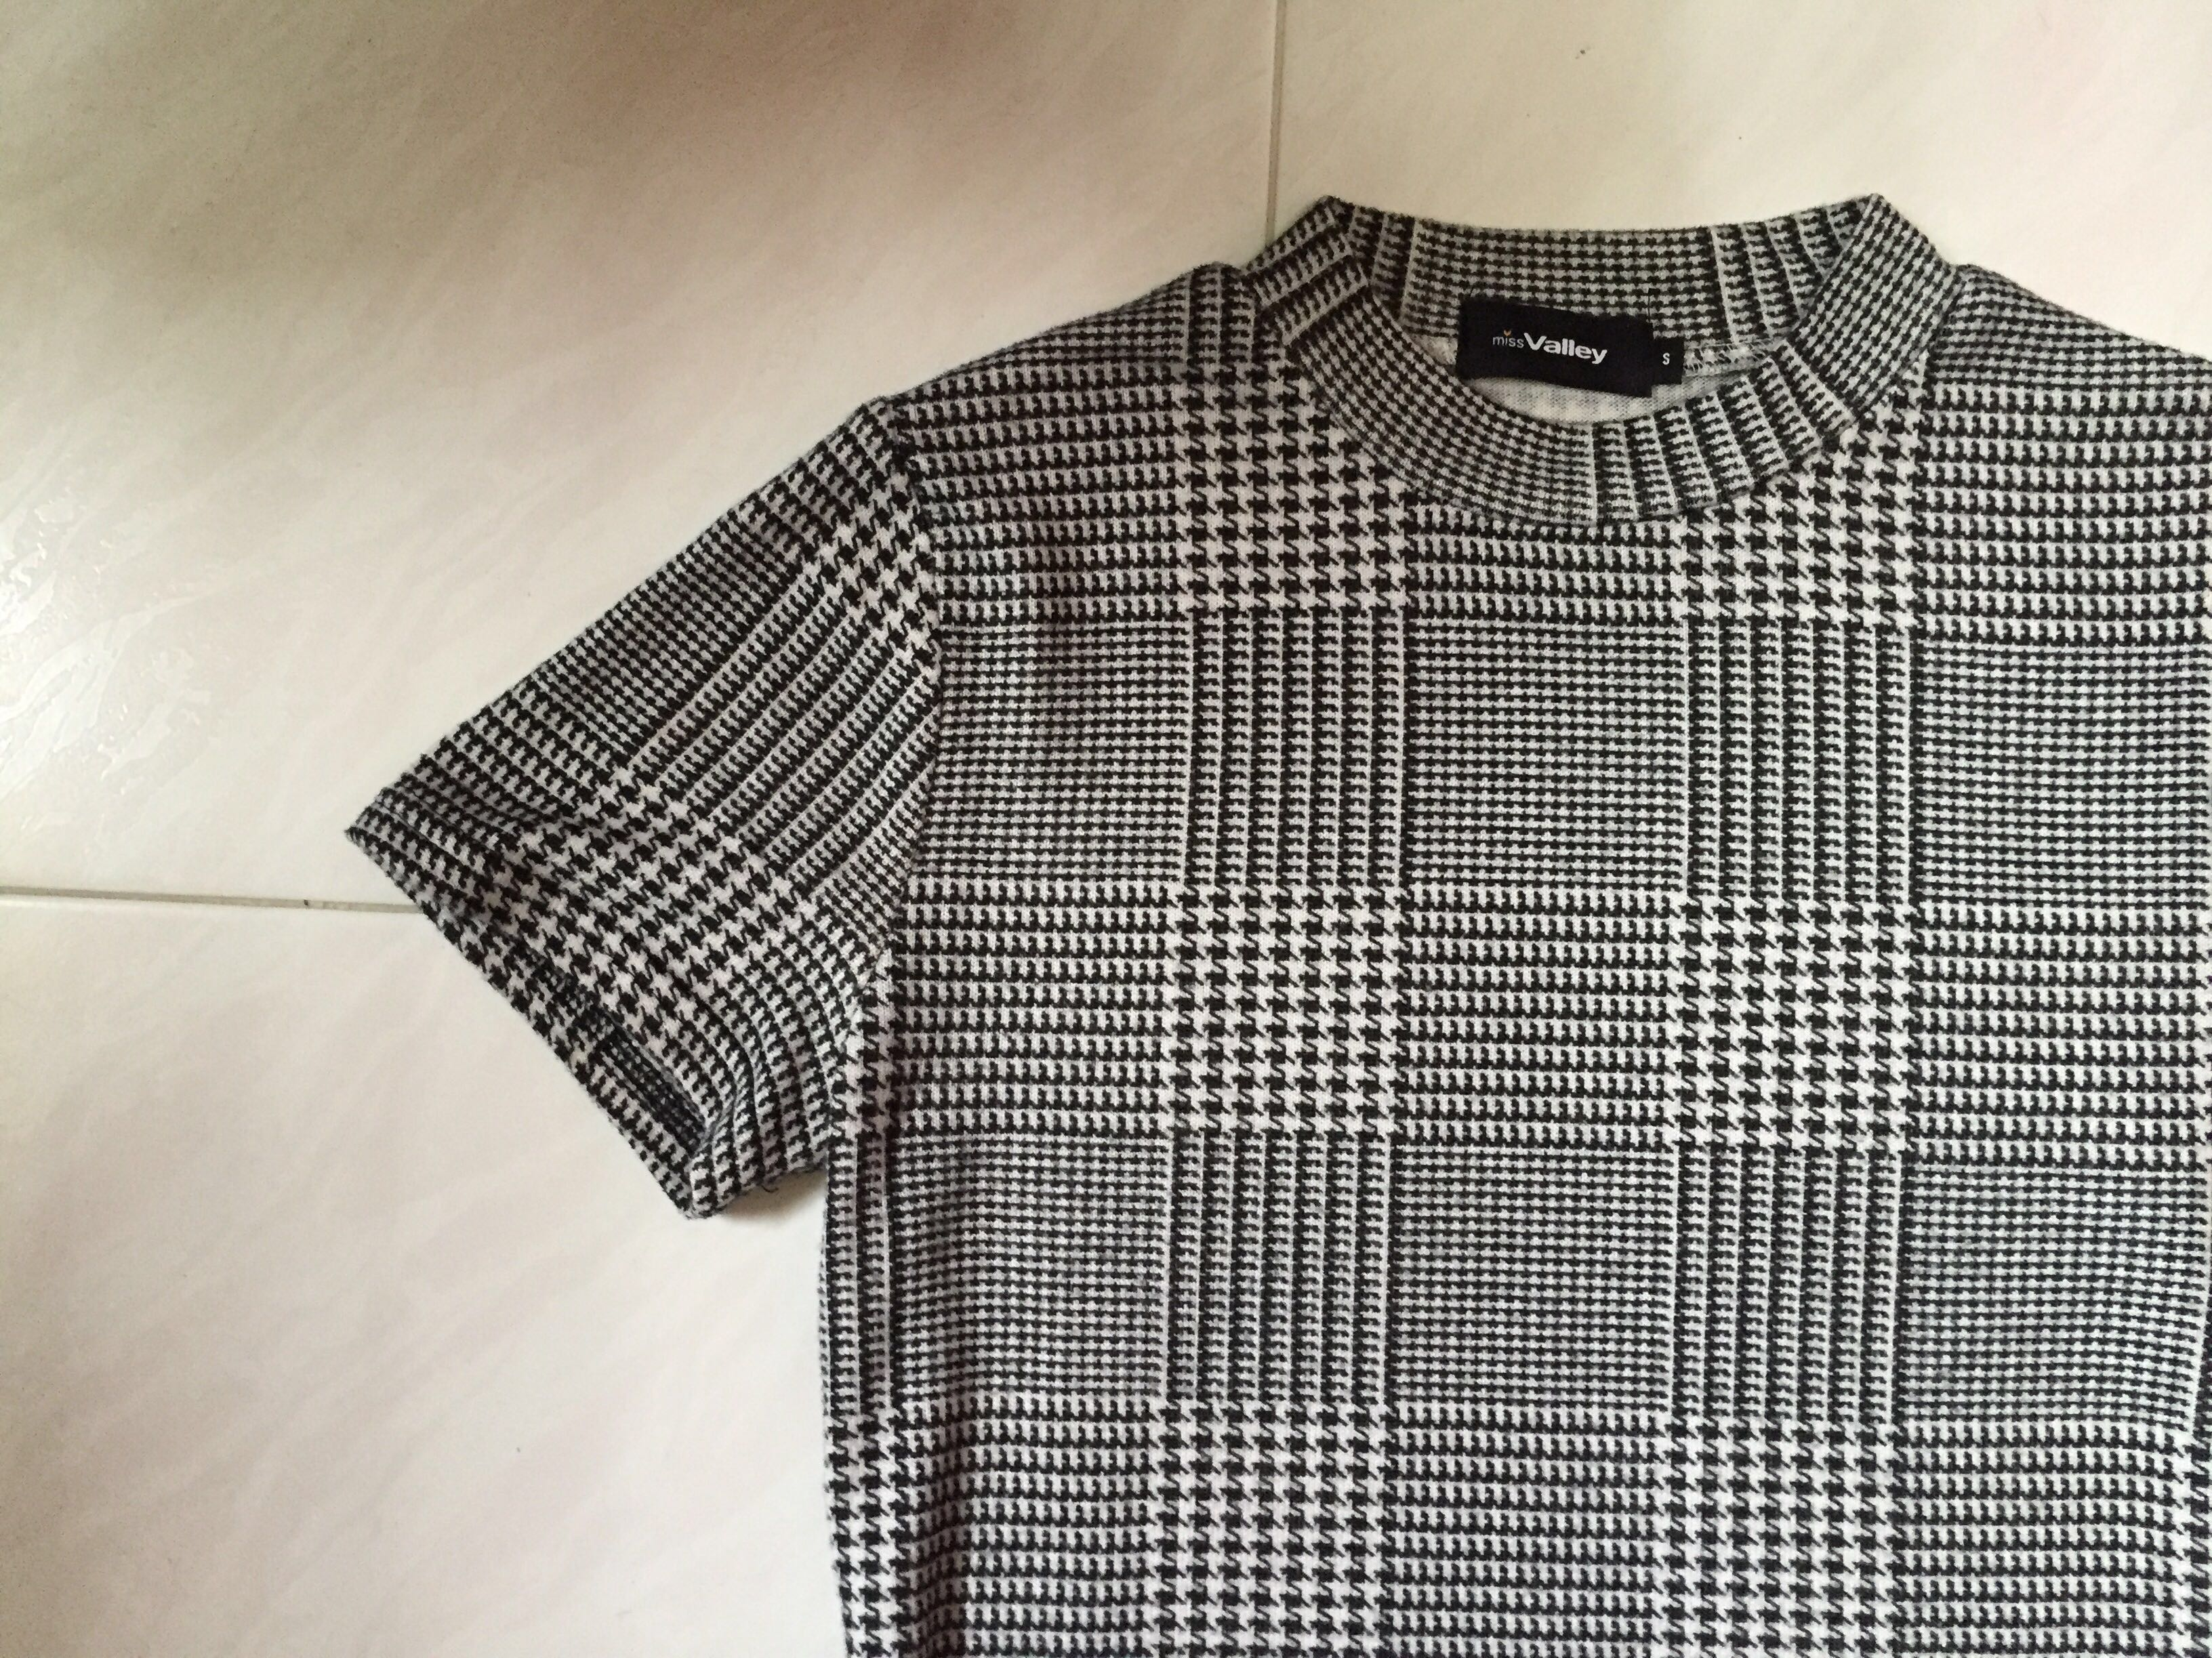 df076957 Houndstooth Mock Turtleneck Top, Women's Fashion, Clothes, Tops on ...